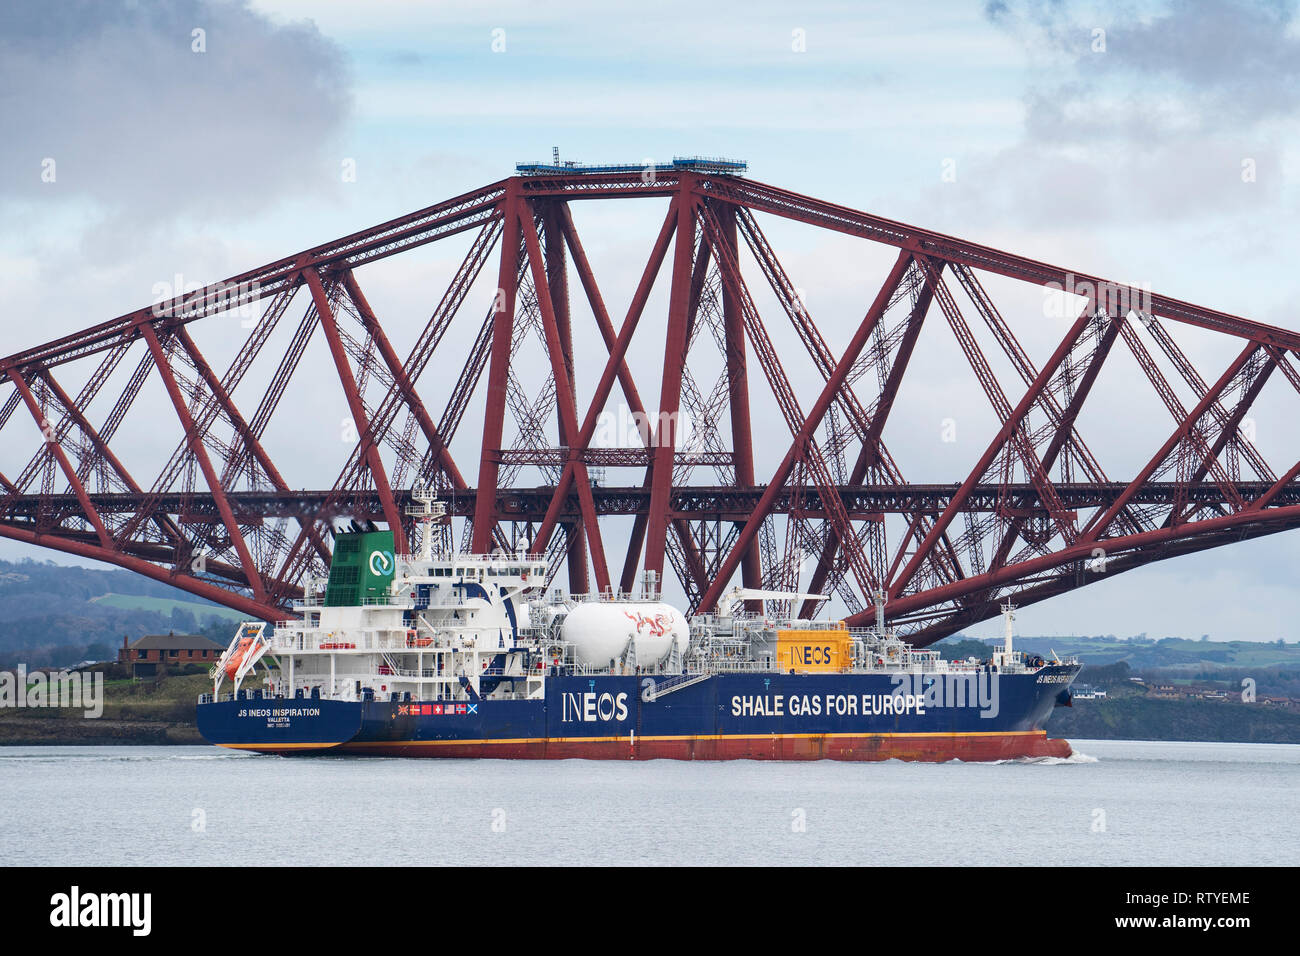 INEOS gas tanker transporting shale gas from USA to Grangemouth refinery in Scotland , past the Forth Bridge on the Firth of Forth in Scotland, UK - Stock Image